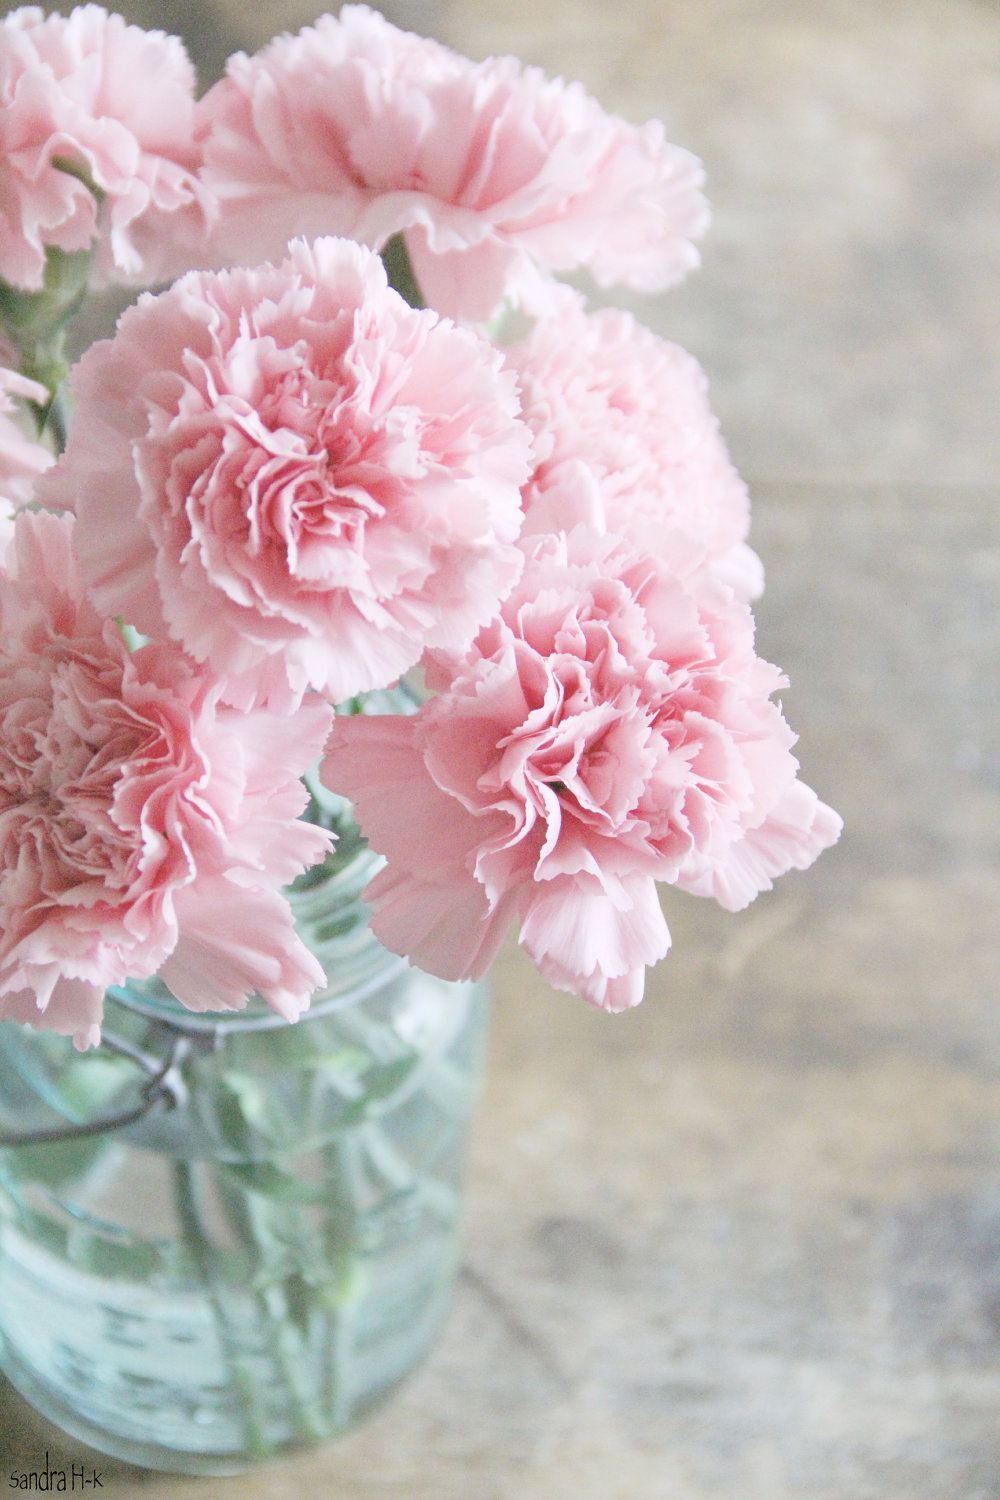 Living A Simple And Blessed Life Pink Carnations Flower Arrangements Beautiful Flowers